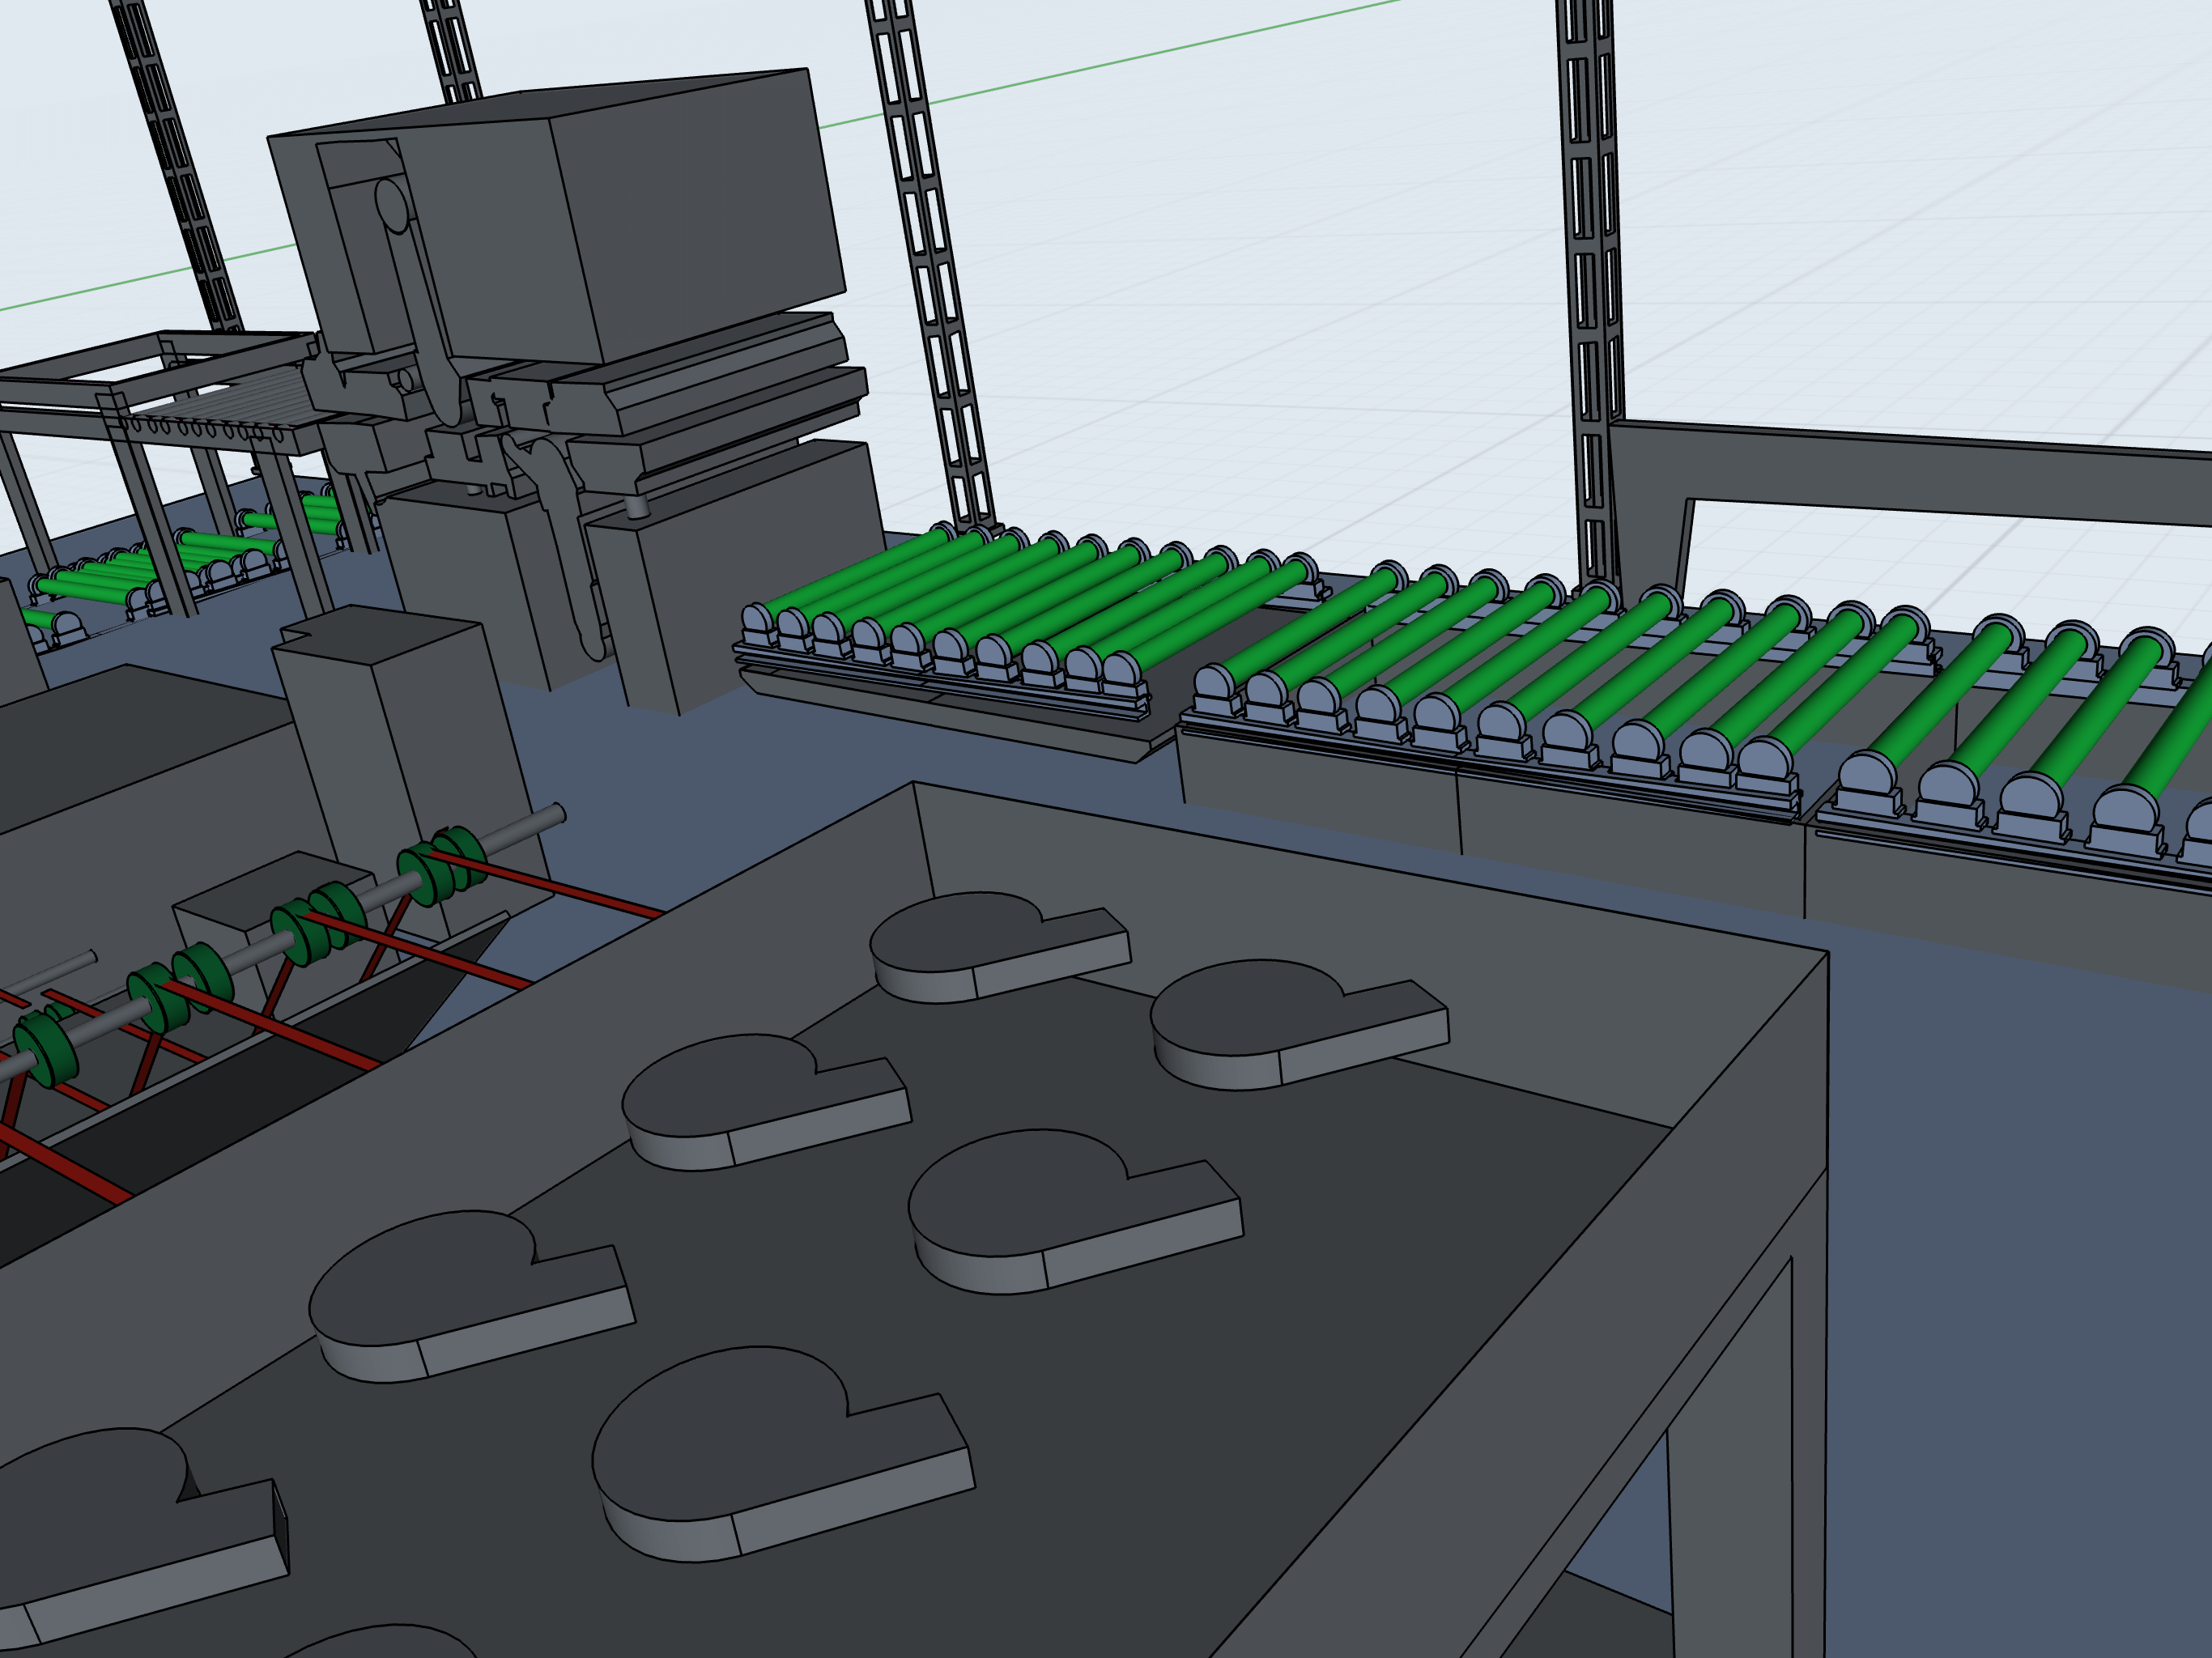 production plant layout3d model